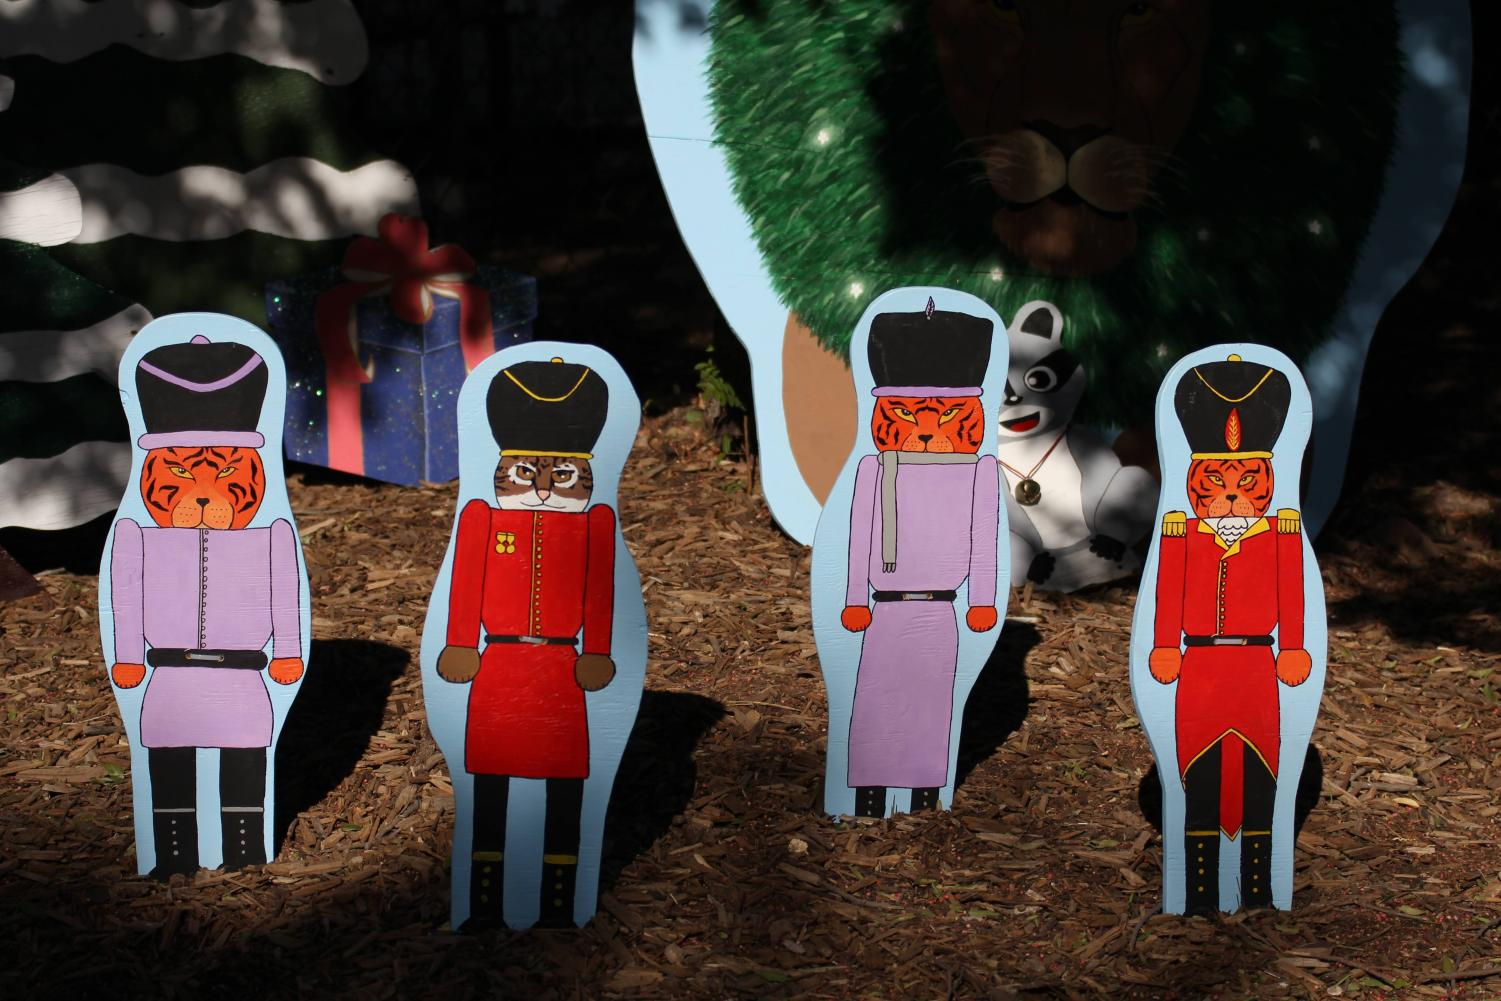 These cutouts are apart of the red team, Ira's Kingdom, promotion photo area.